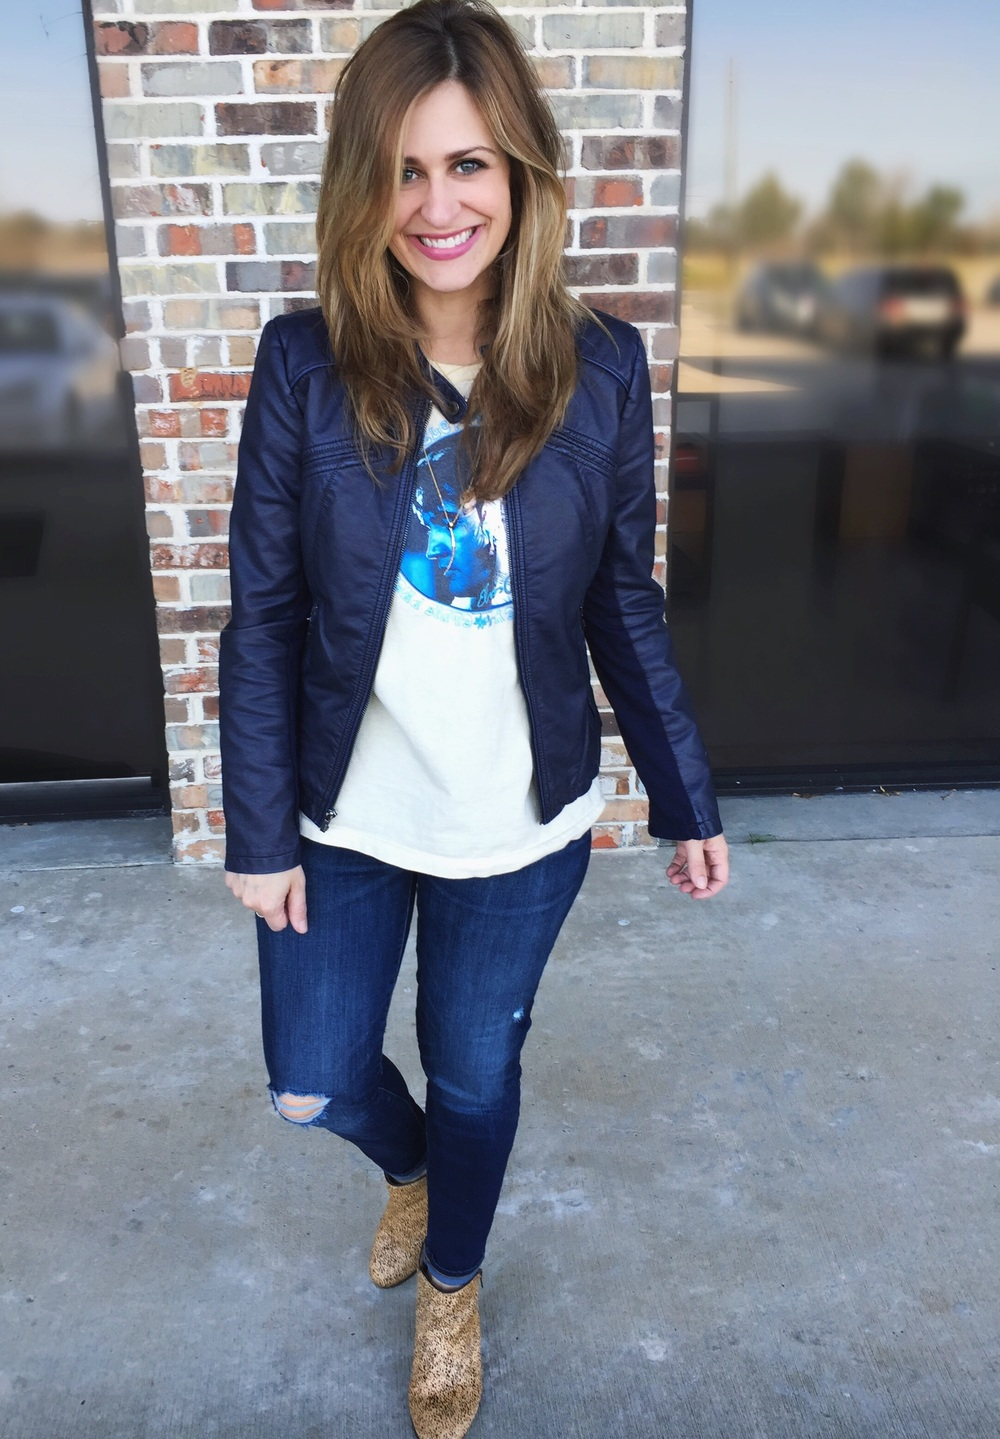 Jacket:  Express  Jeans:  Gap  Booties: Sole Society (old, similar  here )